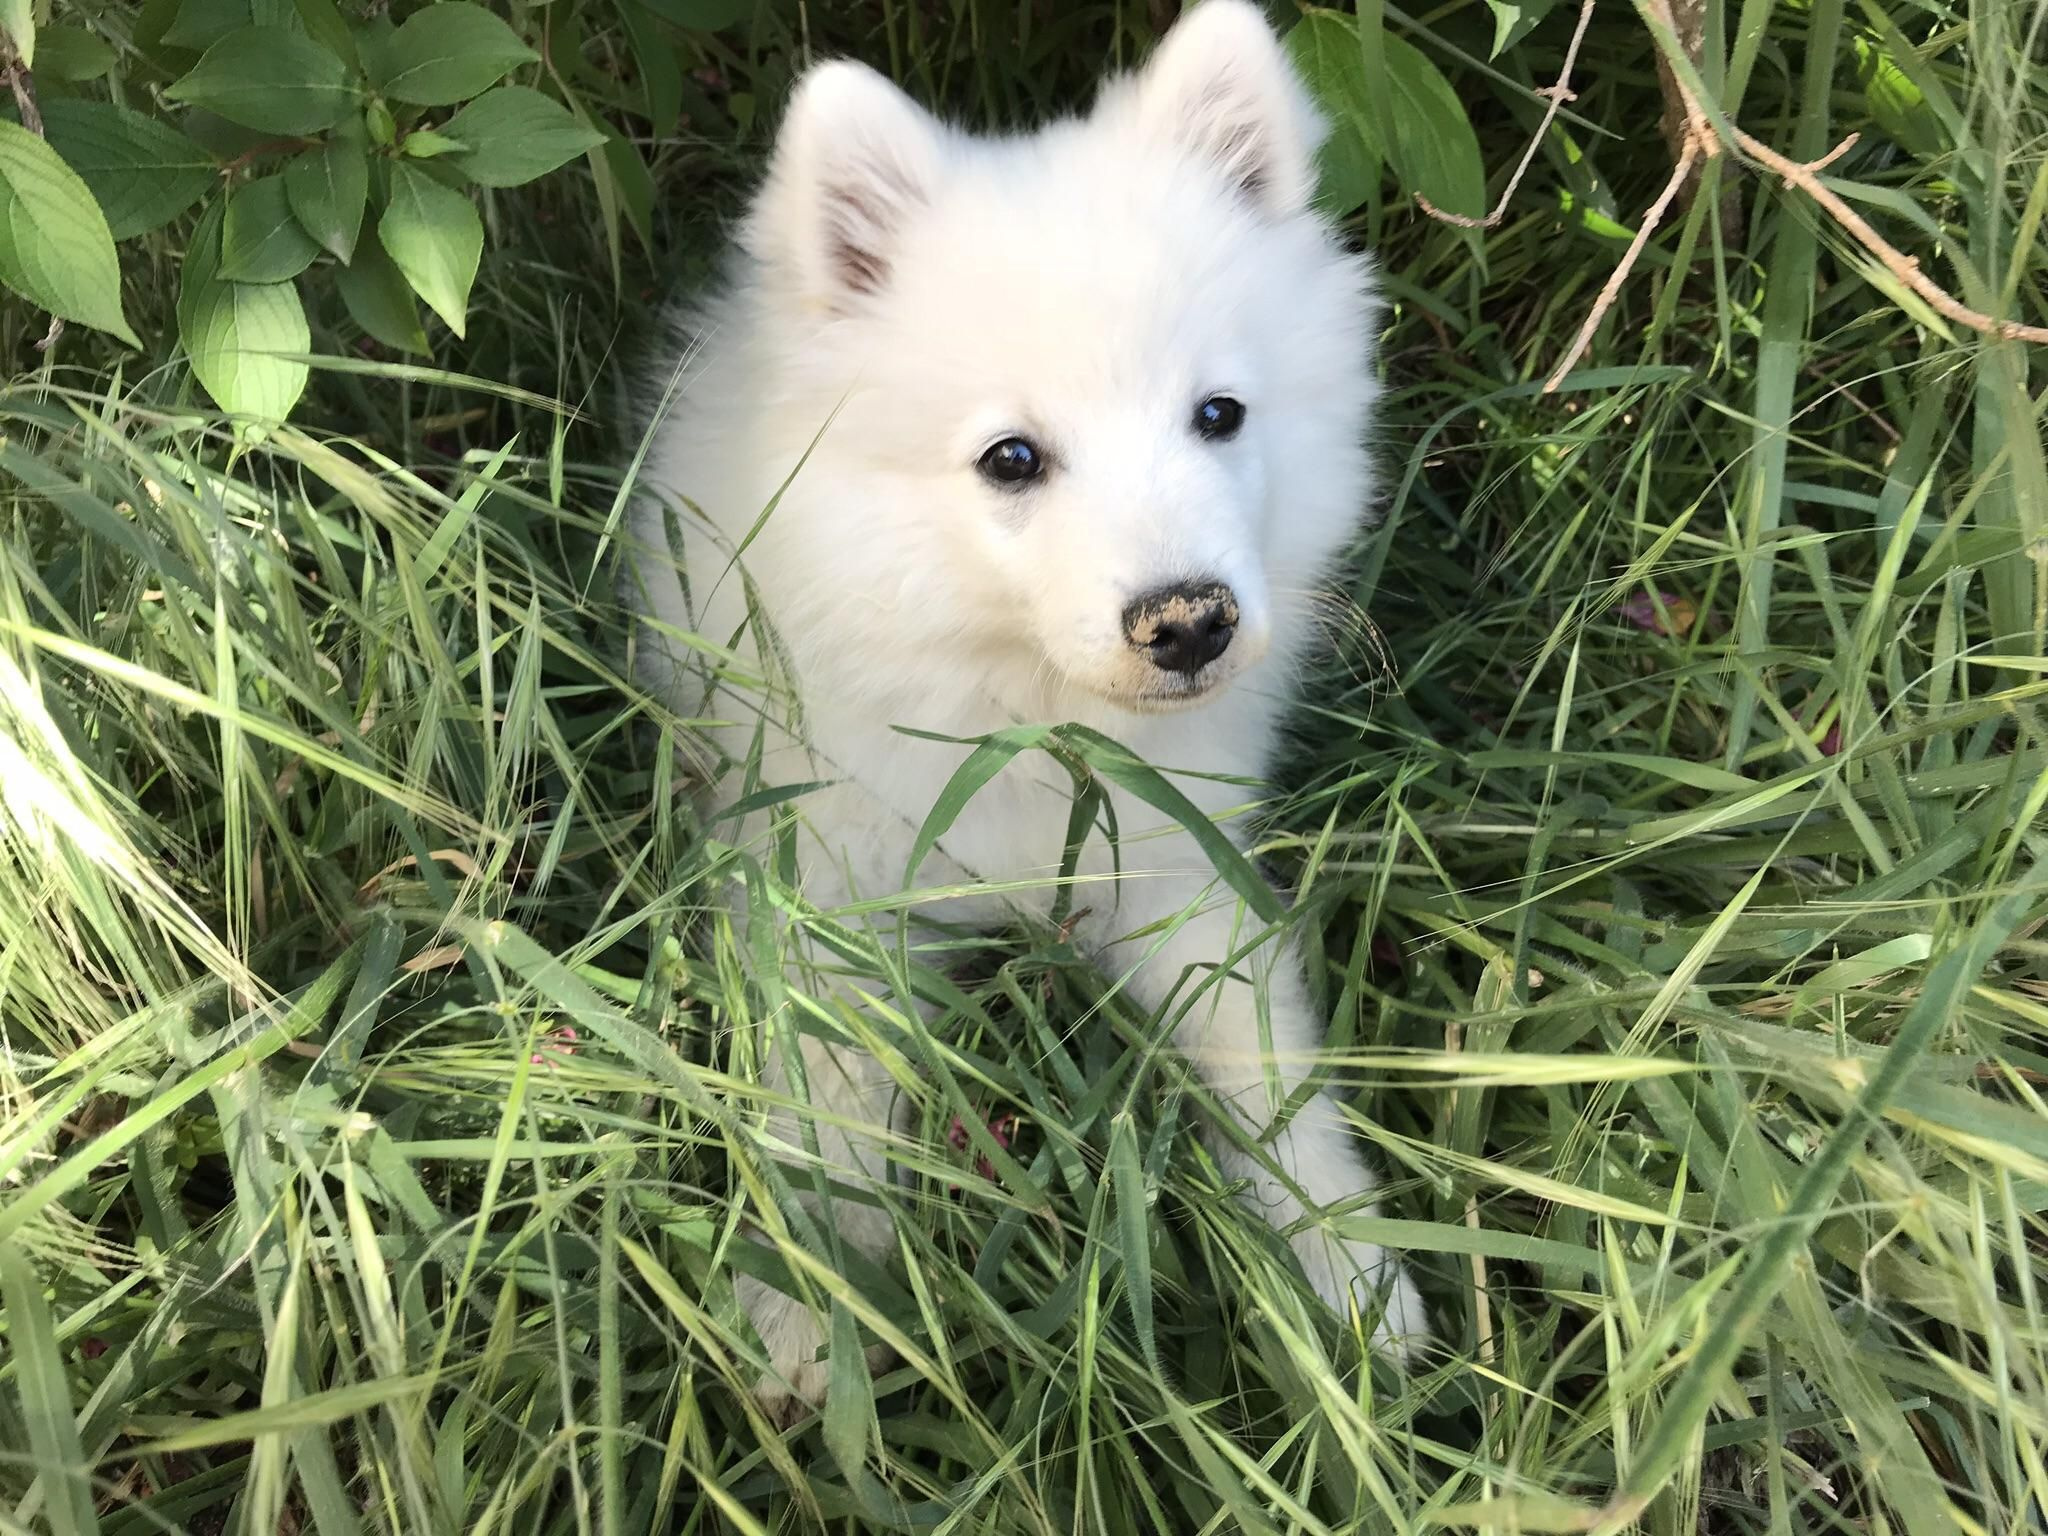 This Is Wasabi Hes A Japanese Spitz Thats Almost A Year Old Now But Still A Lil Pupper To Me Https Ift Tt 2expktd Japanese Spitz Animals Beautiful Japanese